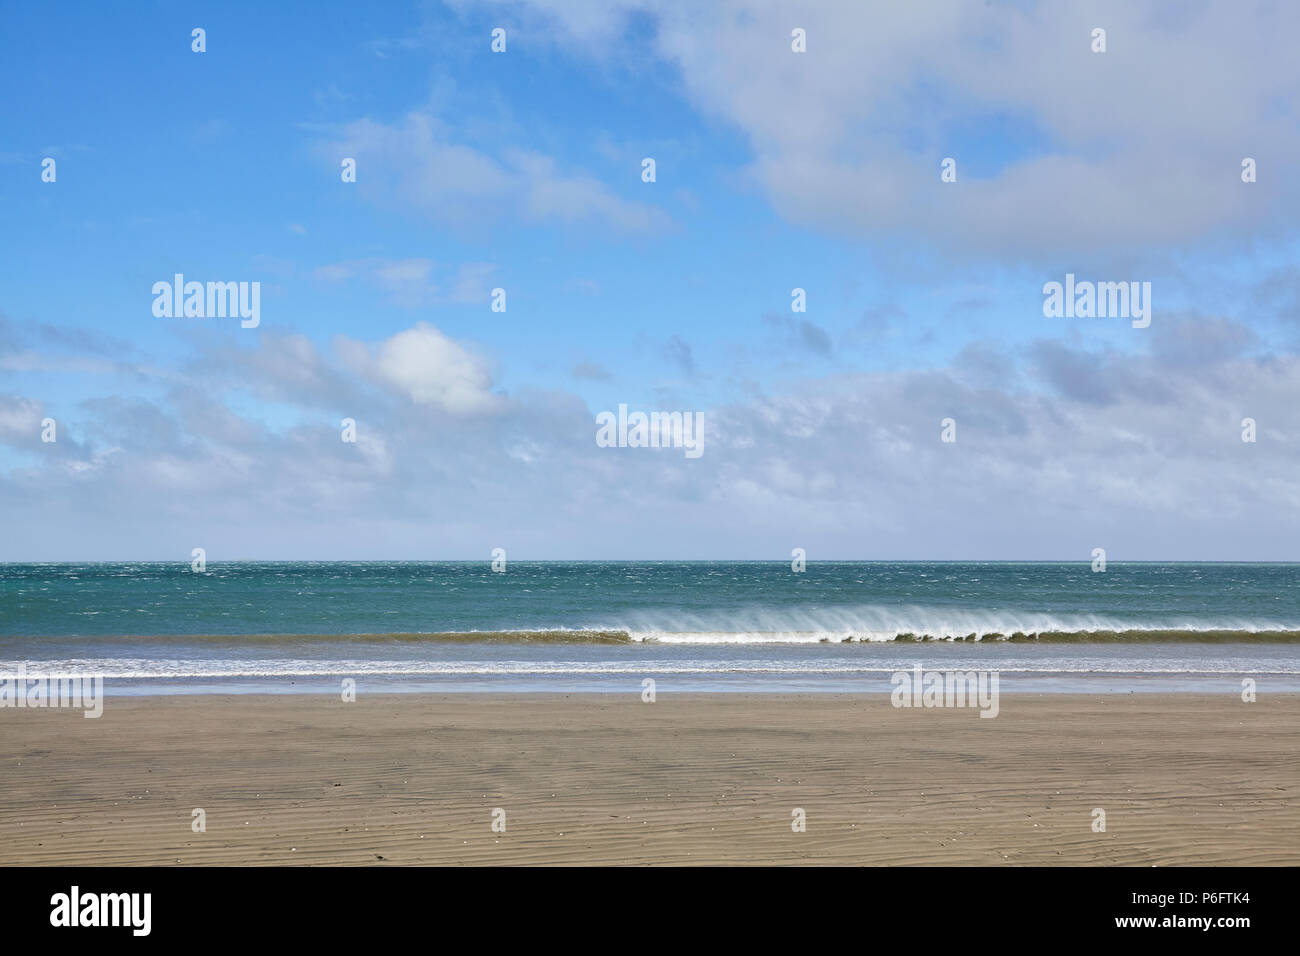 View from a beach on the west coast of New Zealand looking out to the Tazman Sea as a wave breaks on to the shore - Stock Image